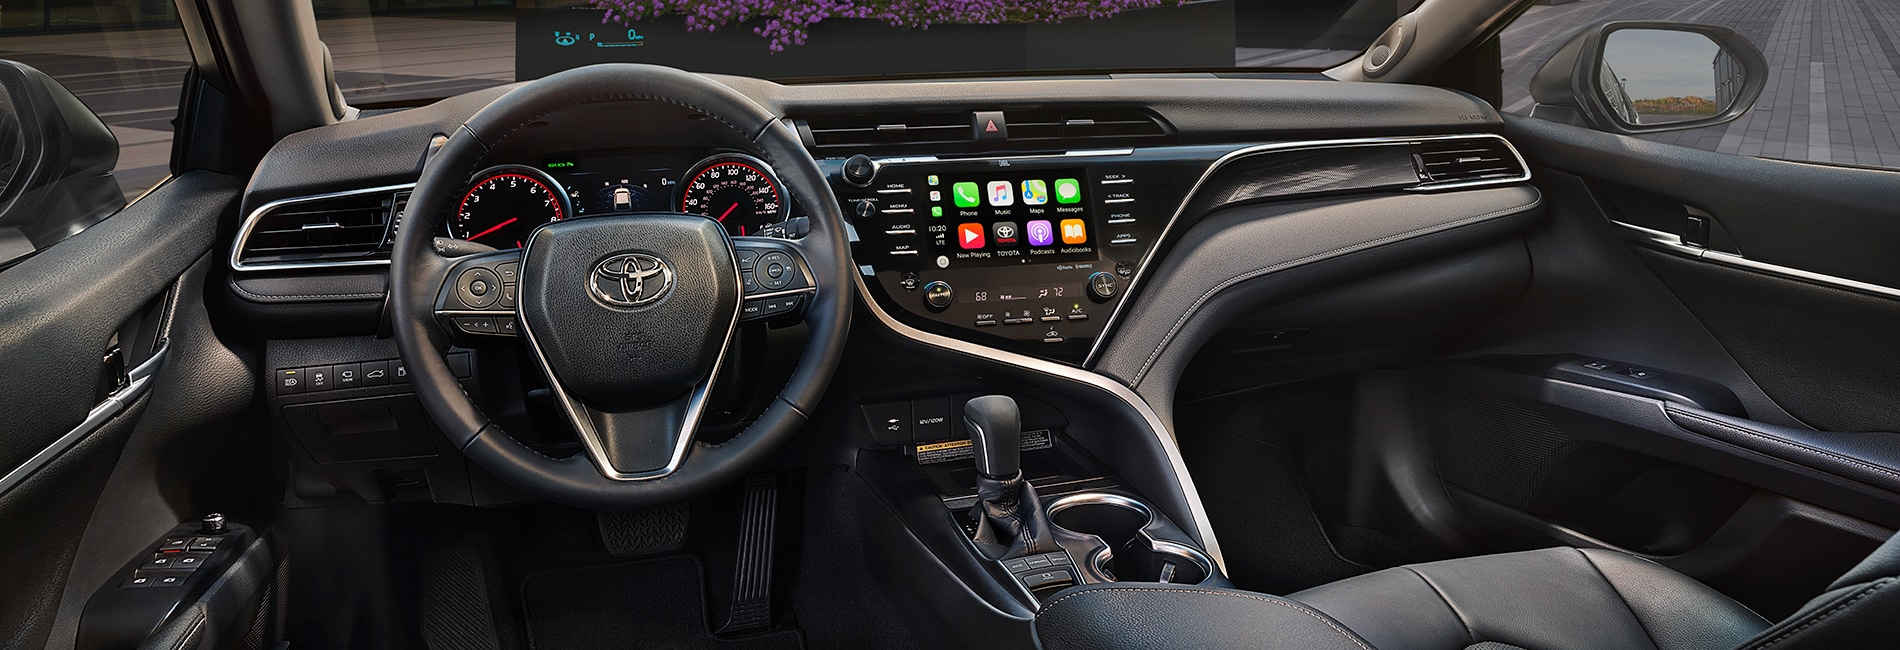 Toyota Camry Interior Vehicle Features